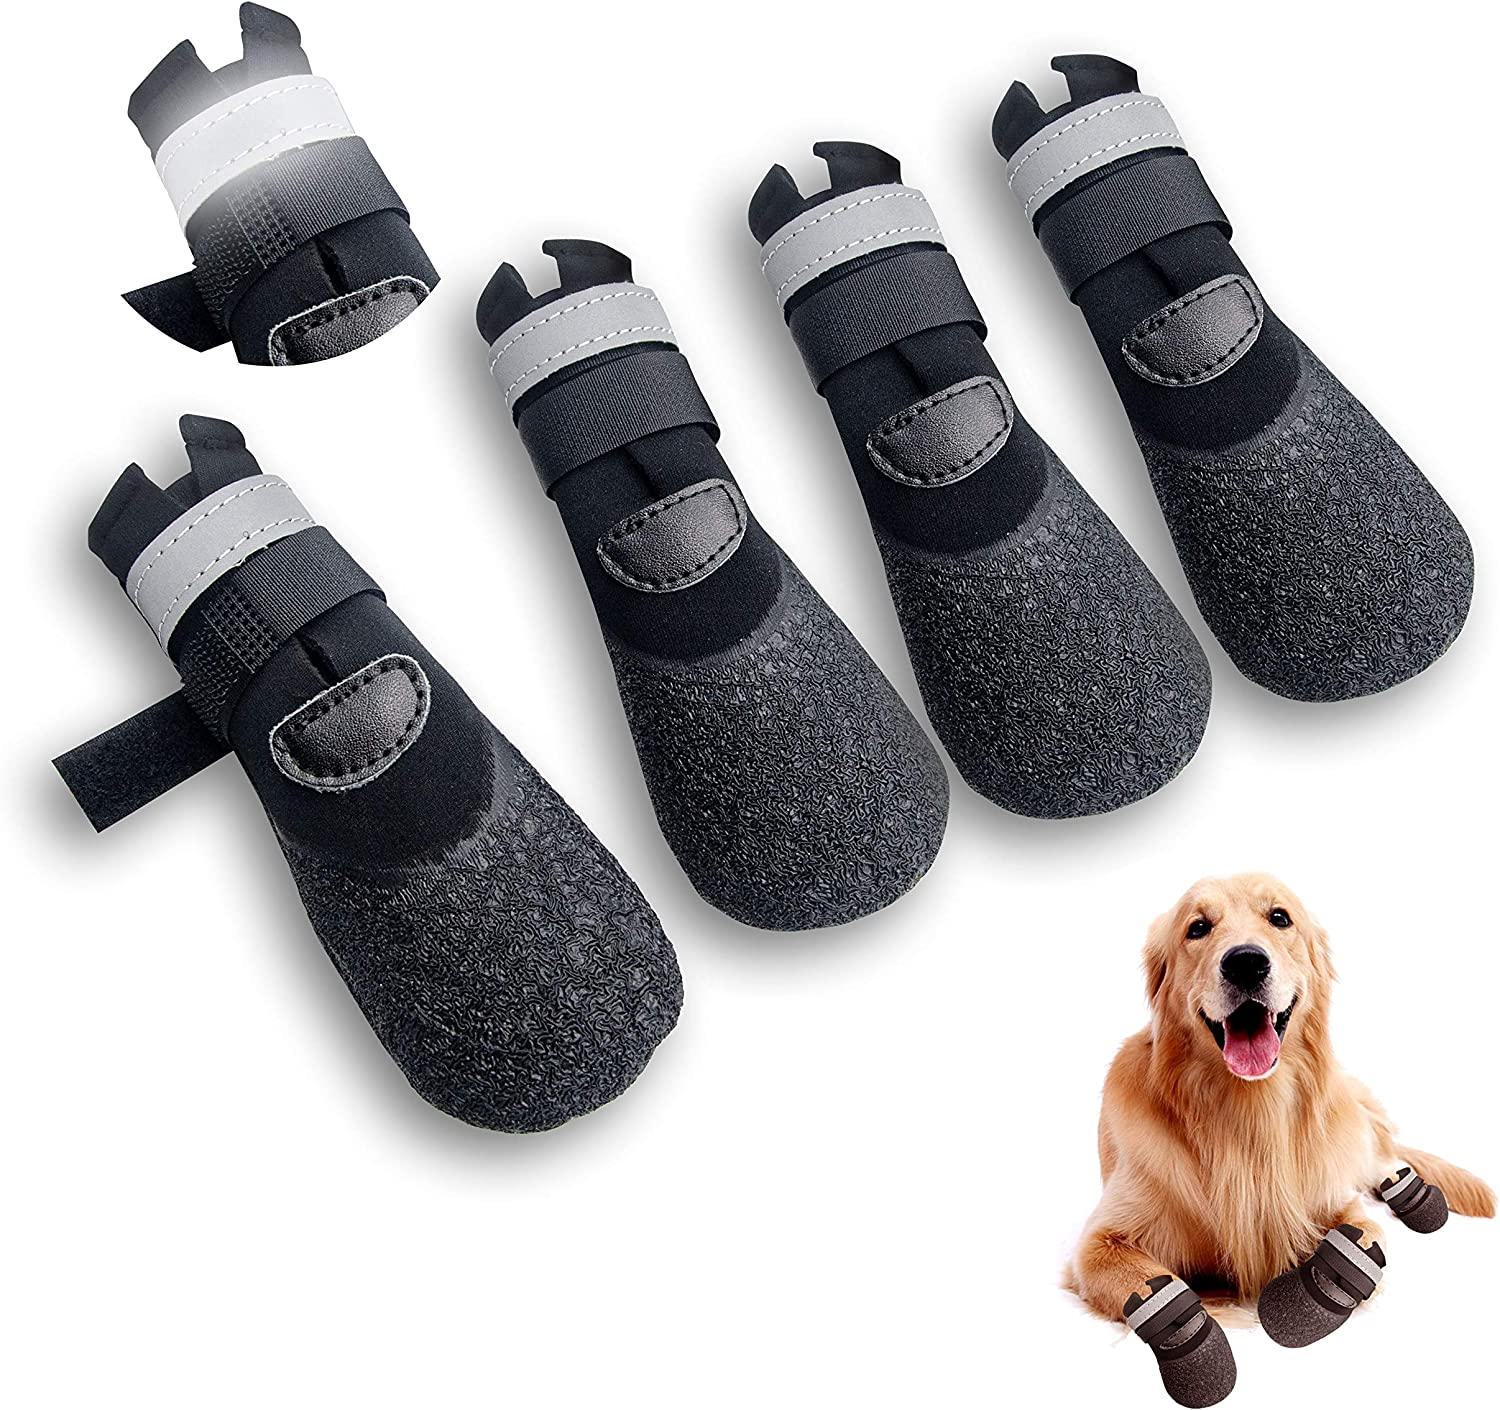 Orangelight Dog Boots,Dog Outdoor Waterproof Shoes for Medium to Large Dogs with Reflective Velcro Rugged Anti-Slip Sole Black 4PCS